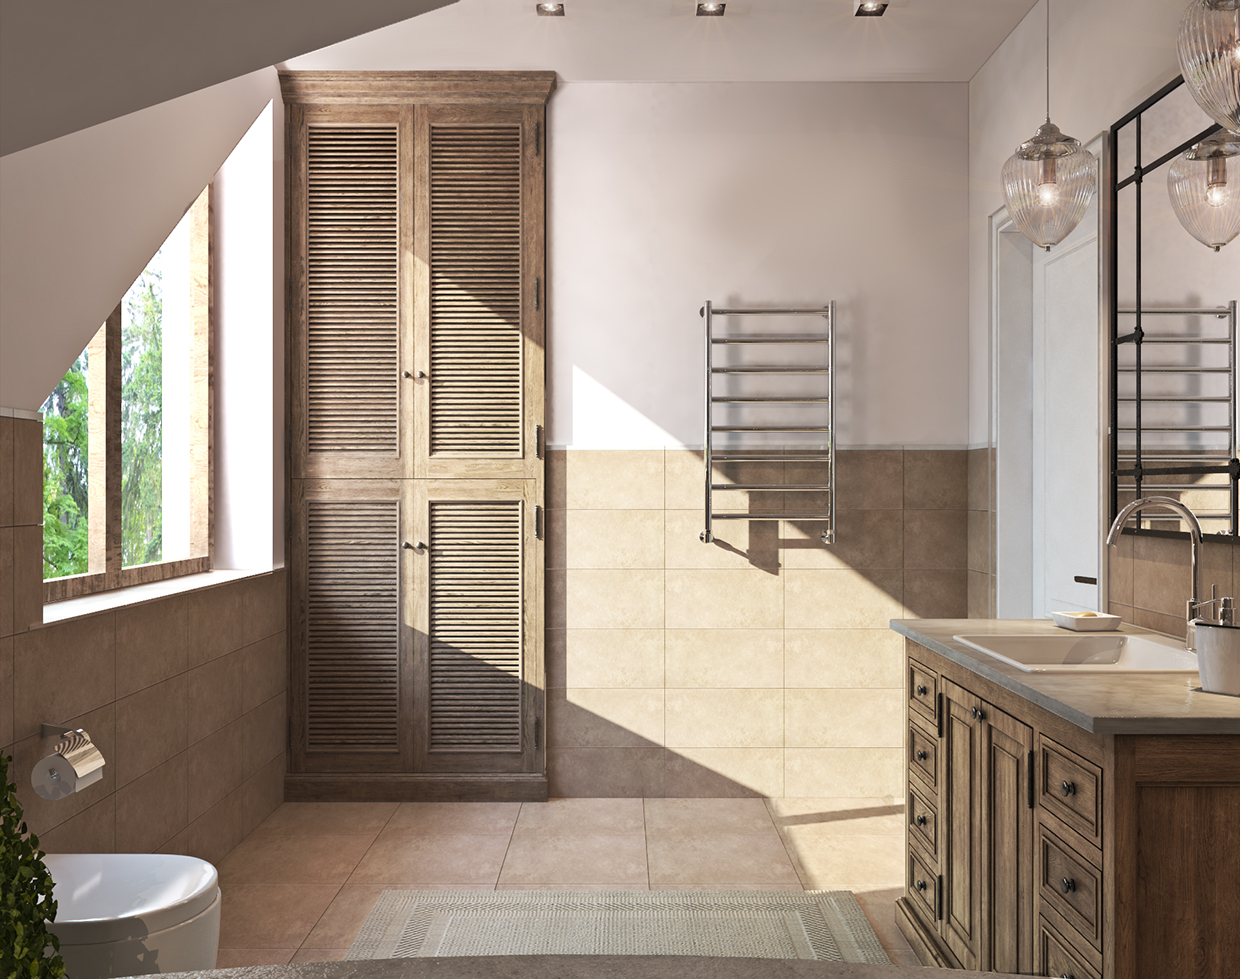 wooden accent decor bathroom design